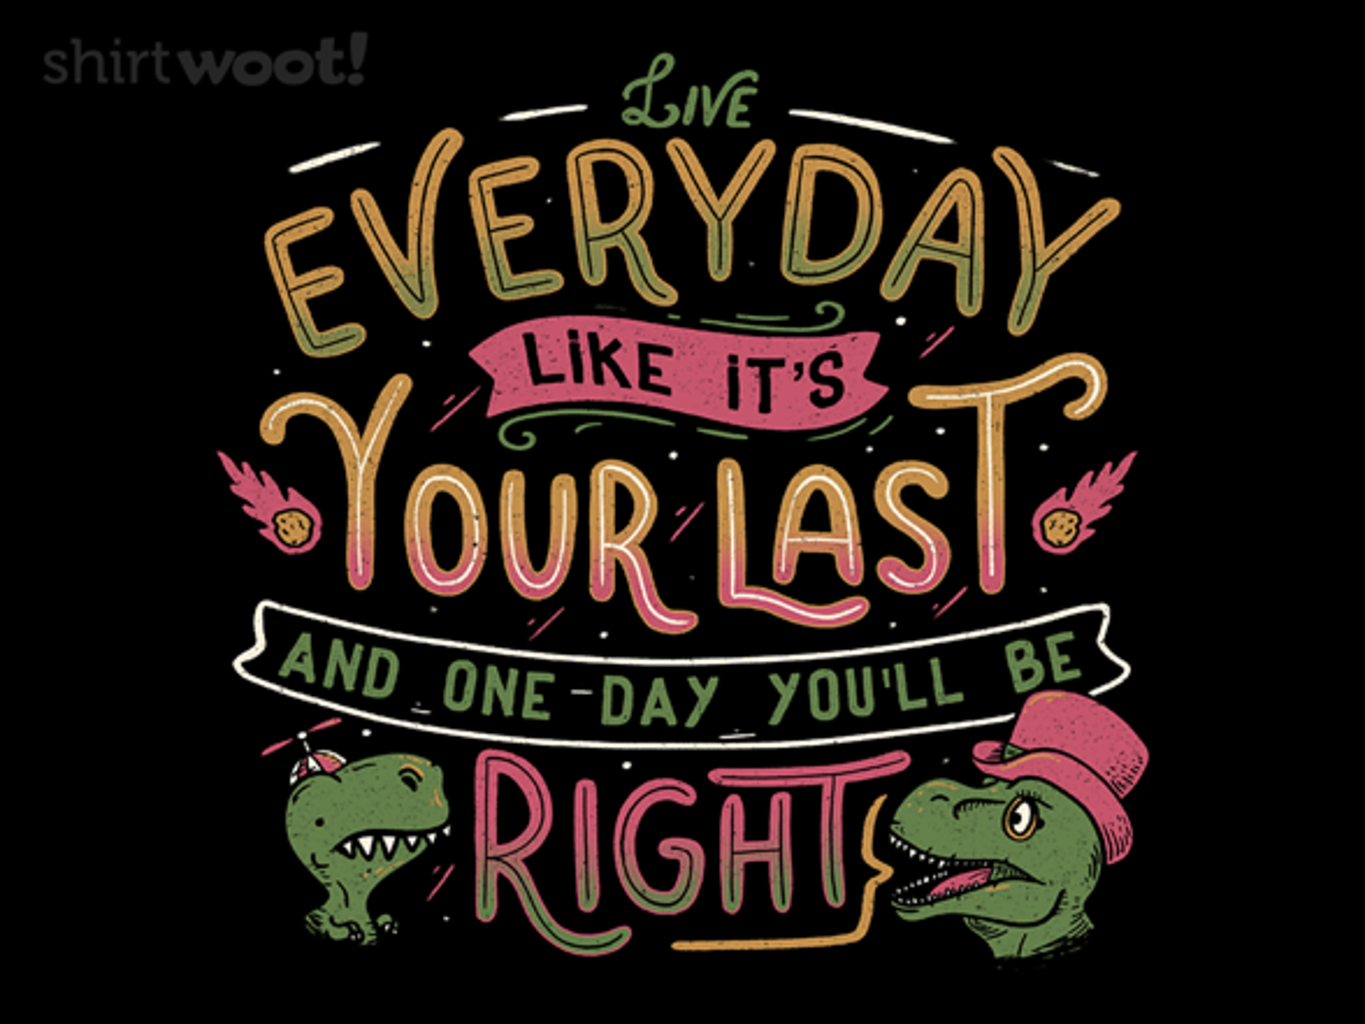 Woot!: Live Every Day Like it's Your Last, and One Day You'll Be Right